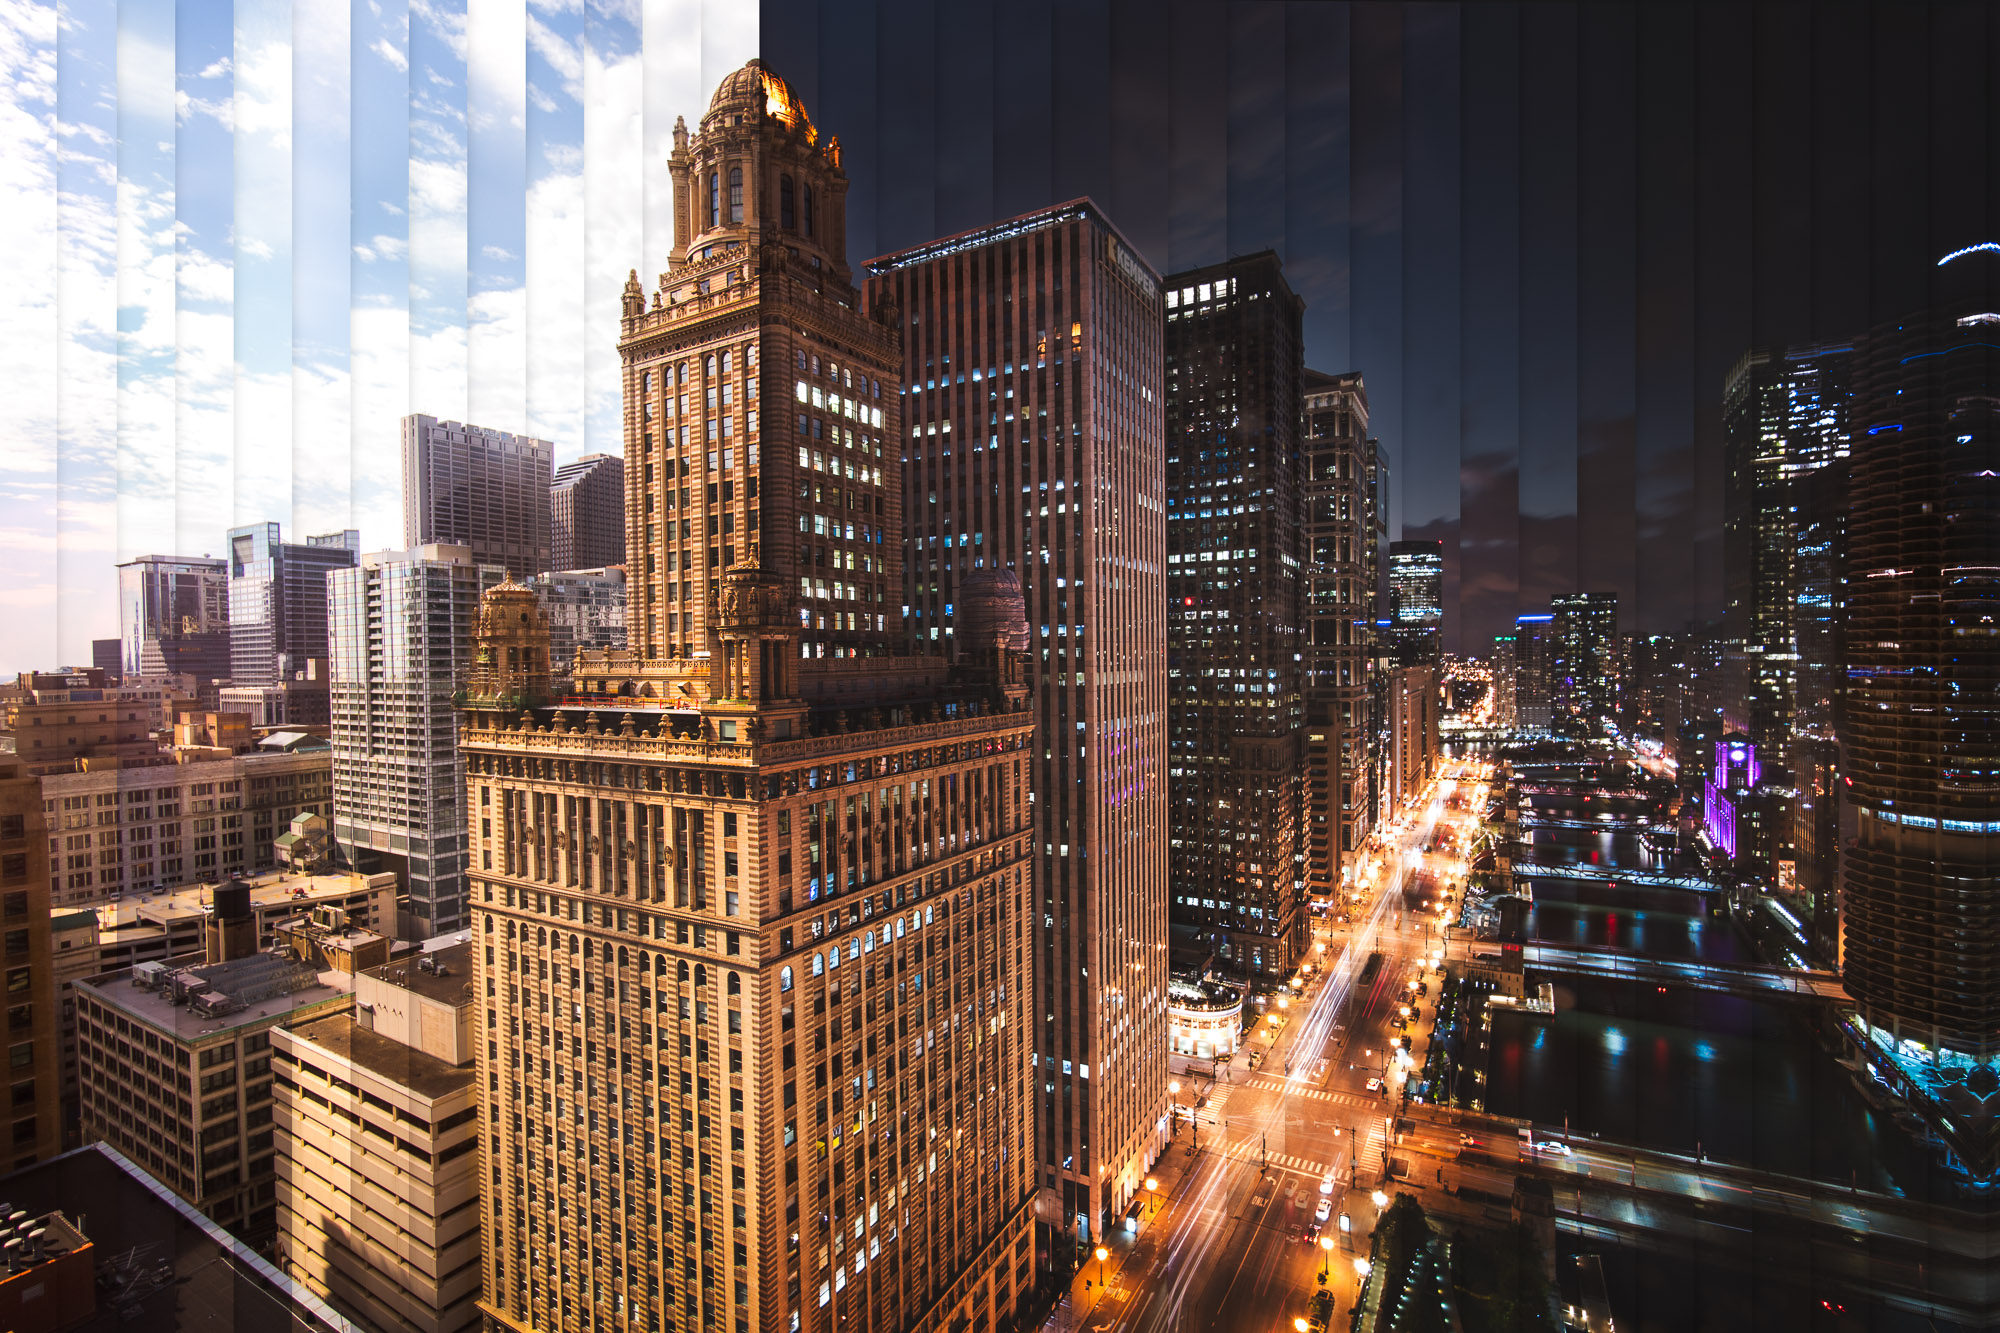 Timeslice Chicago in 52 photos